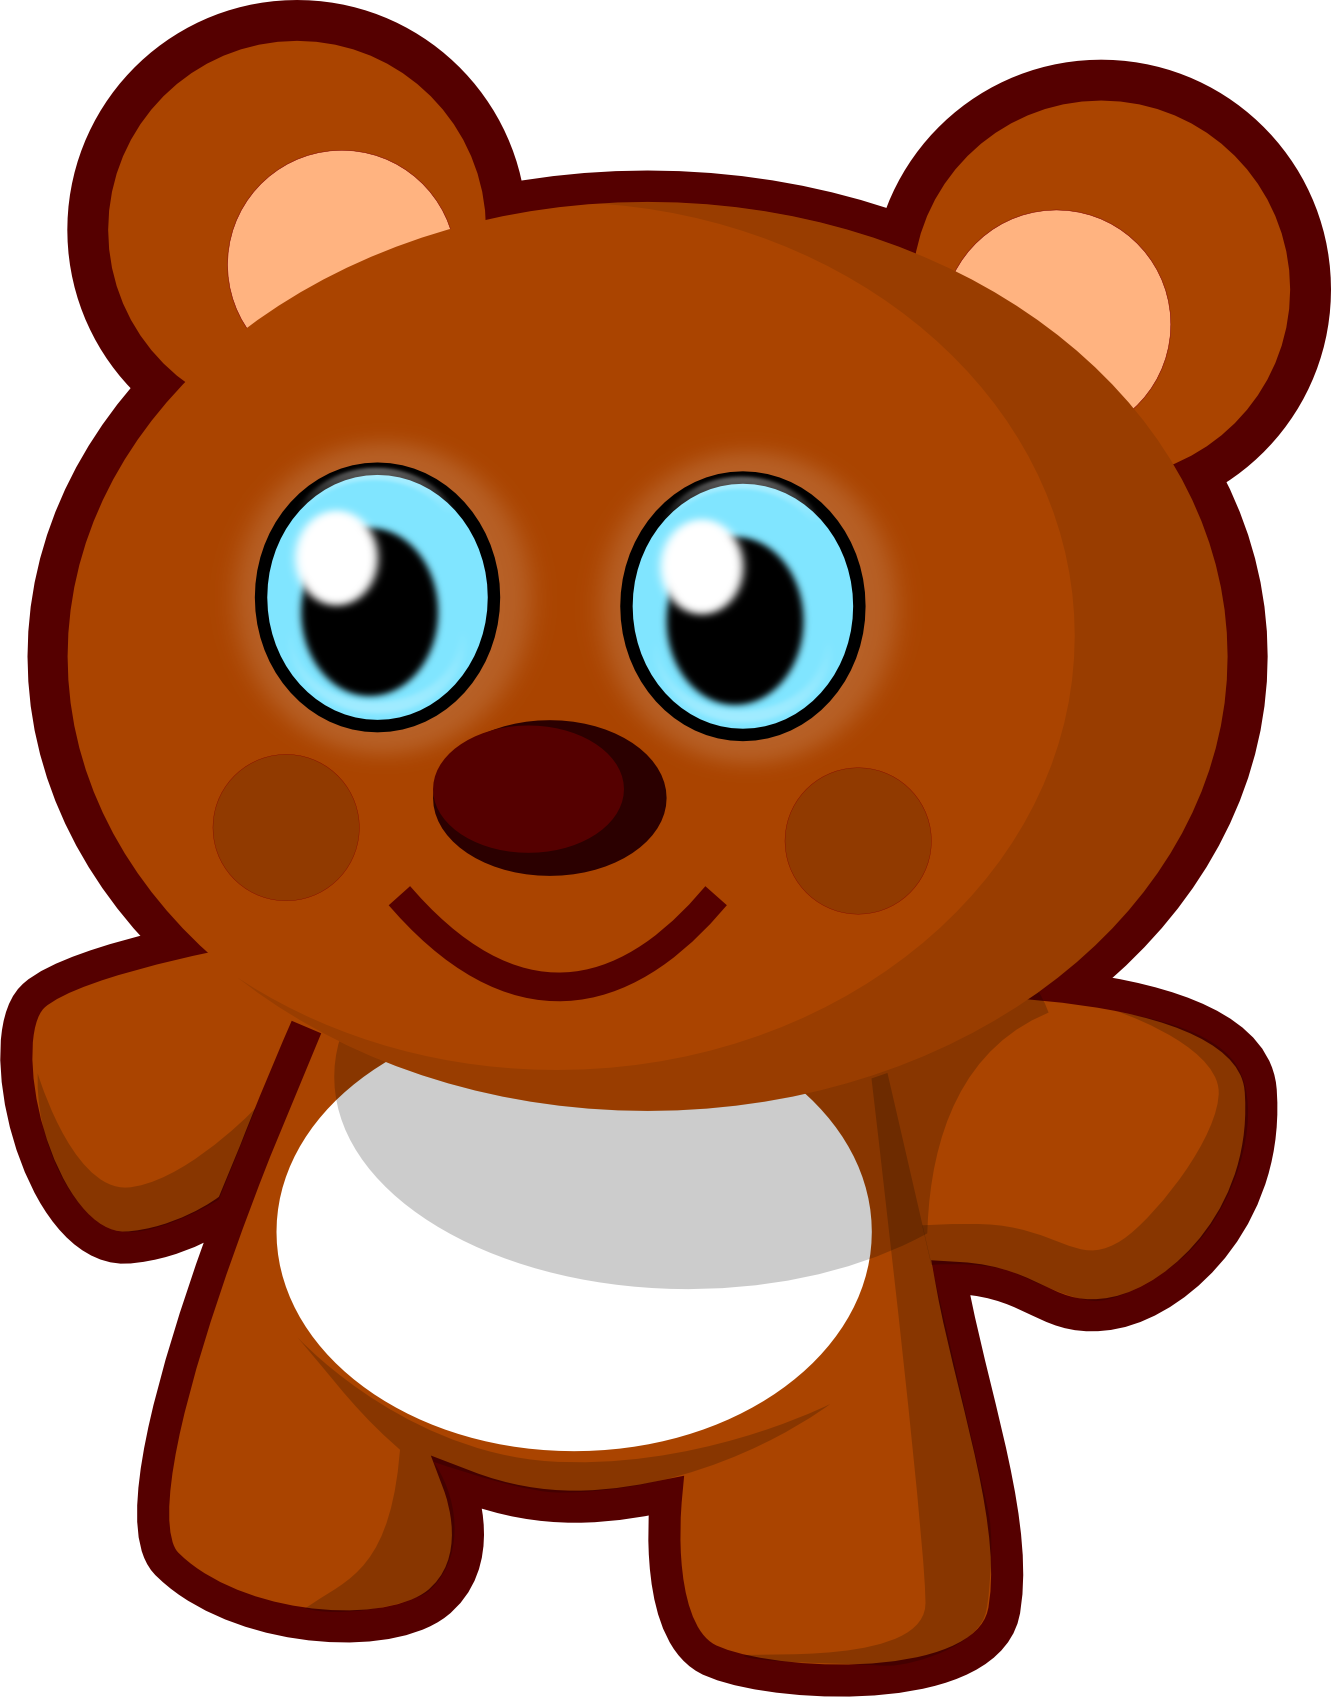 Brown clipart at getdrawings. Cute bear png clipart royalty free stock